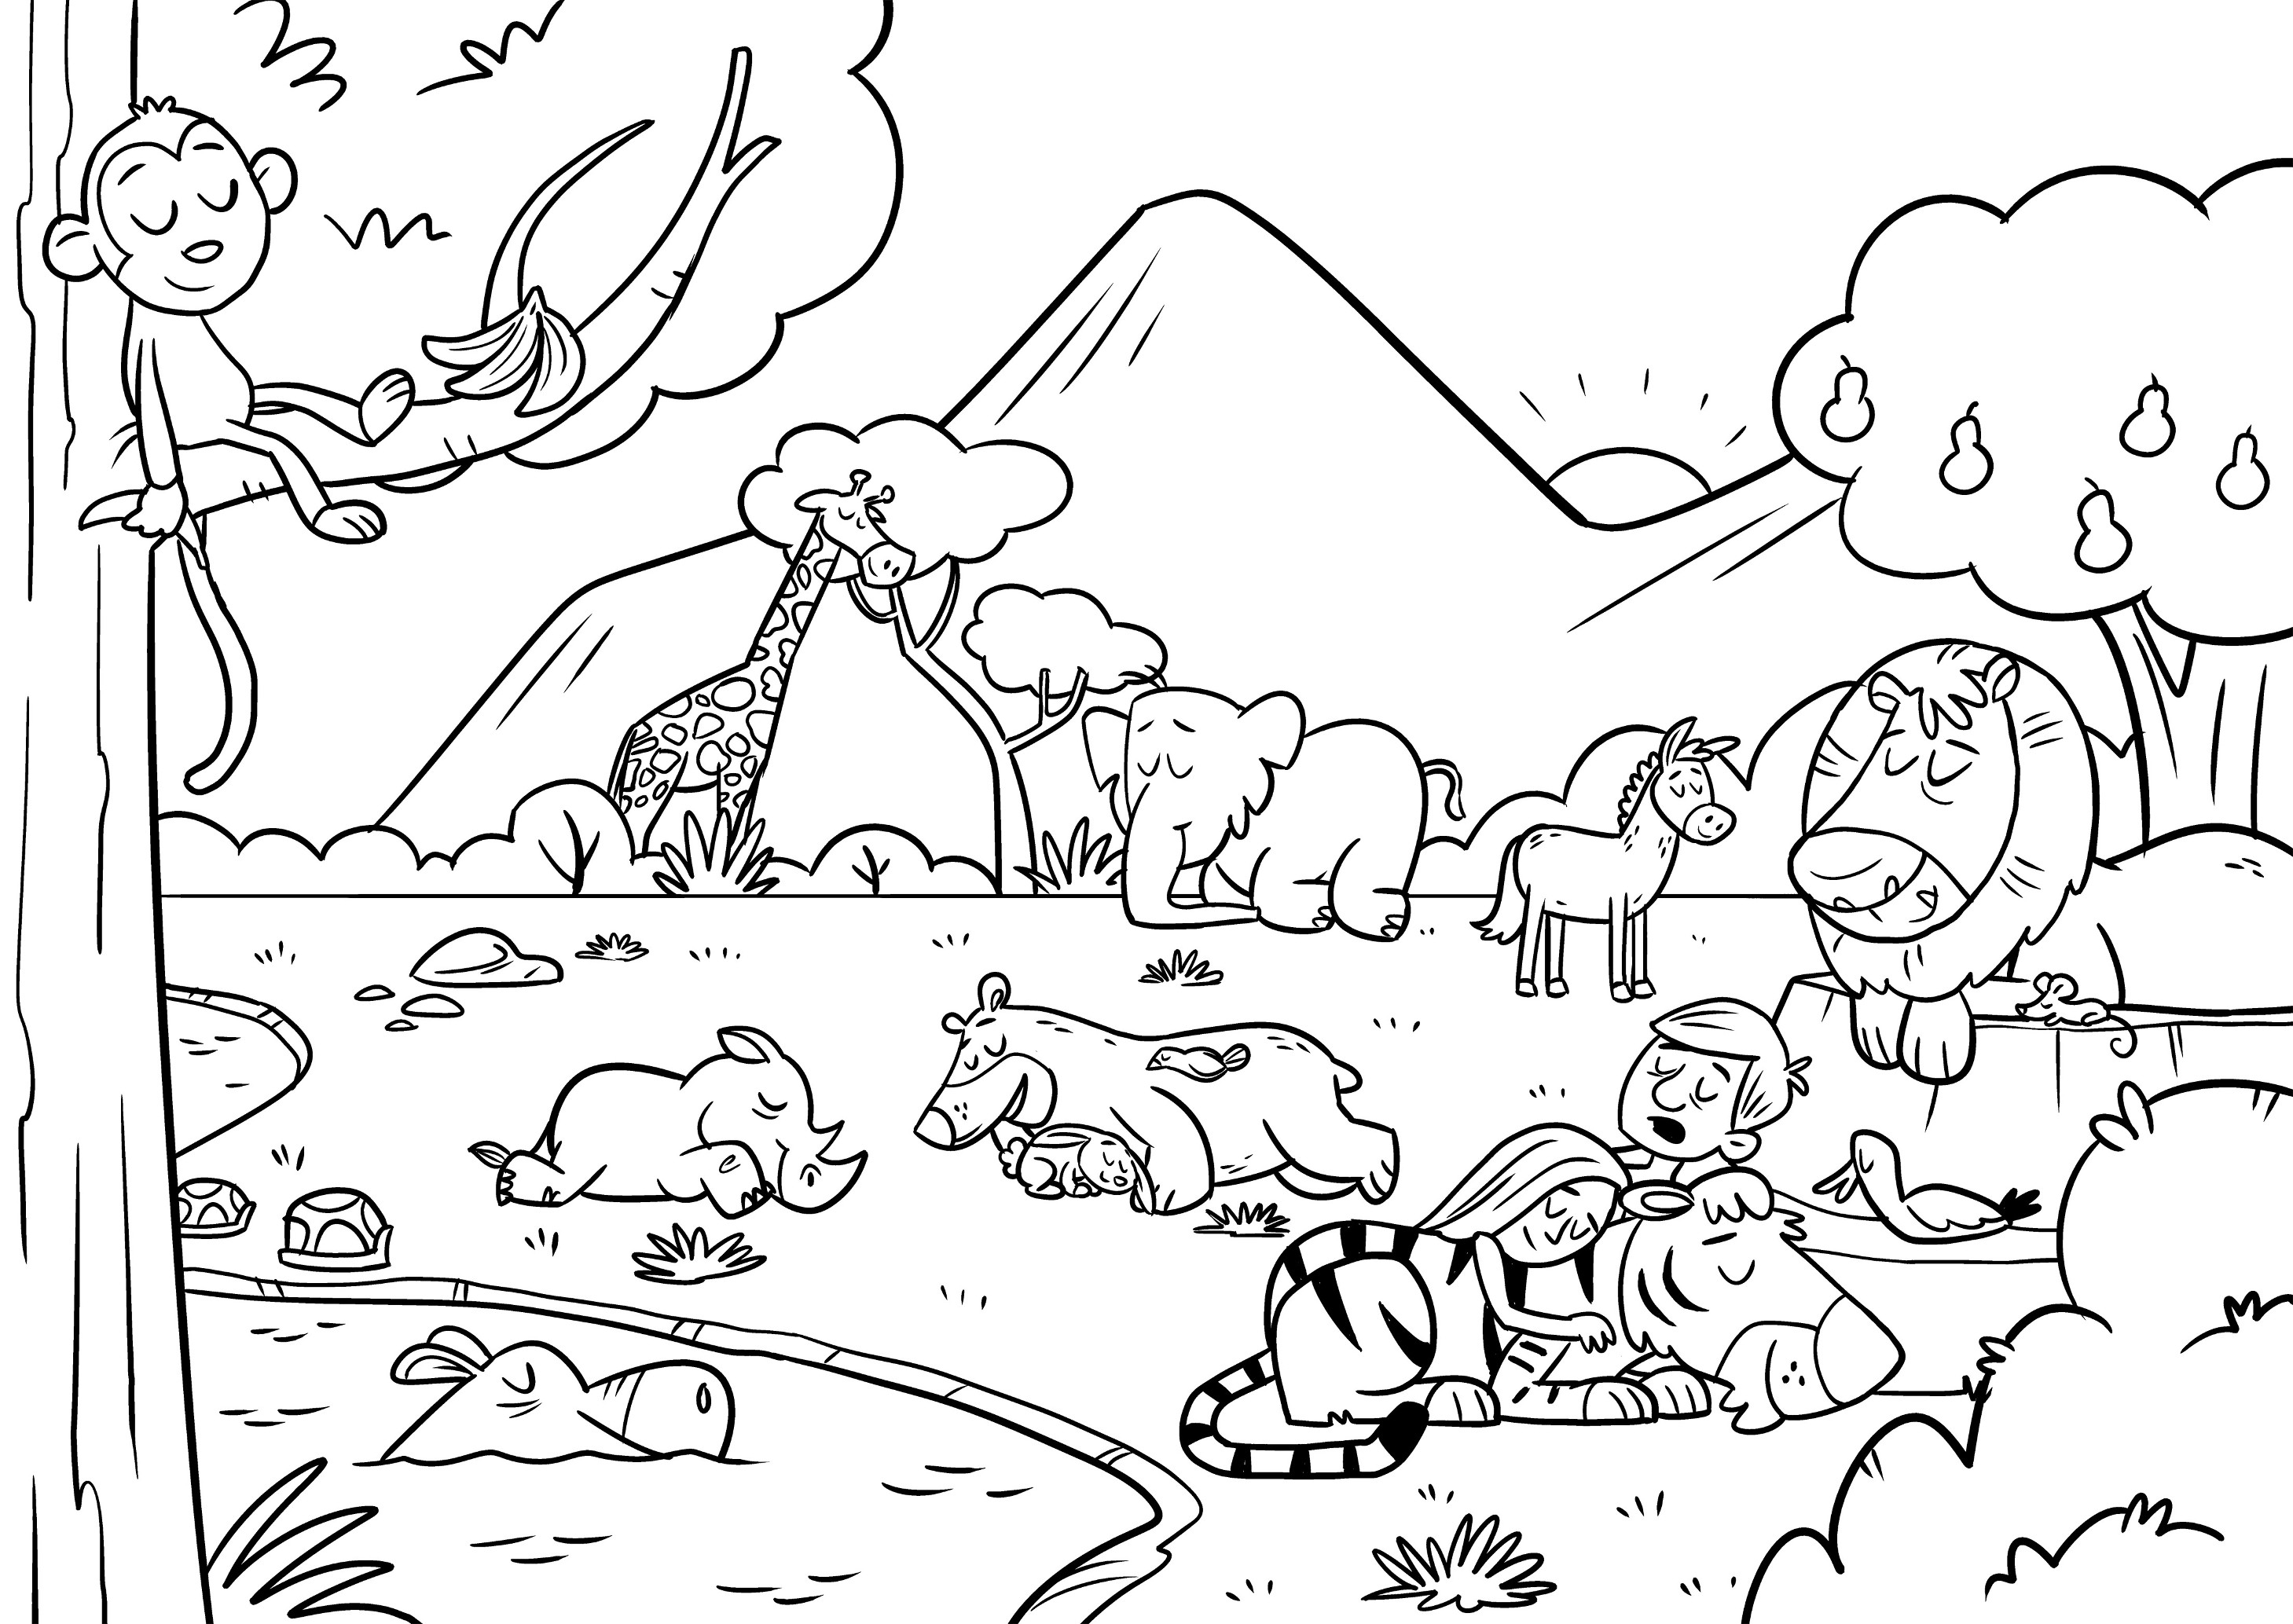 In The Beginning Coloring Sheet